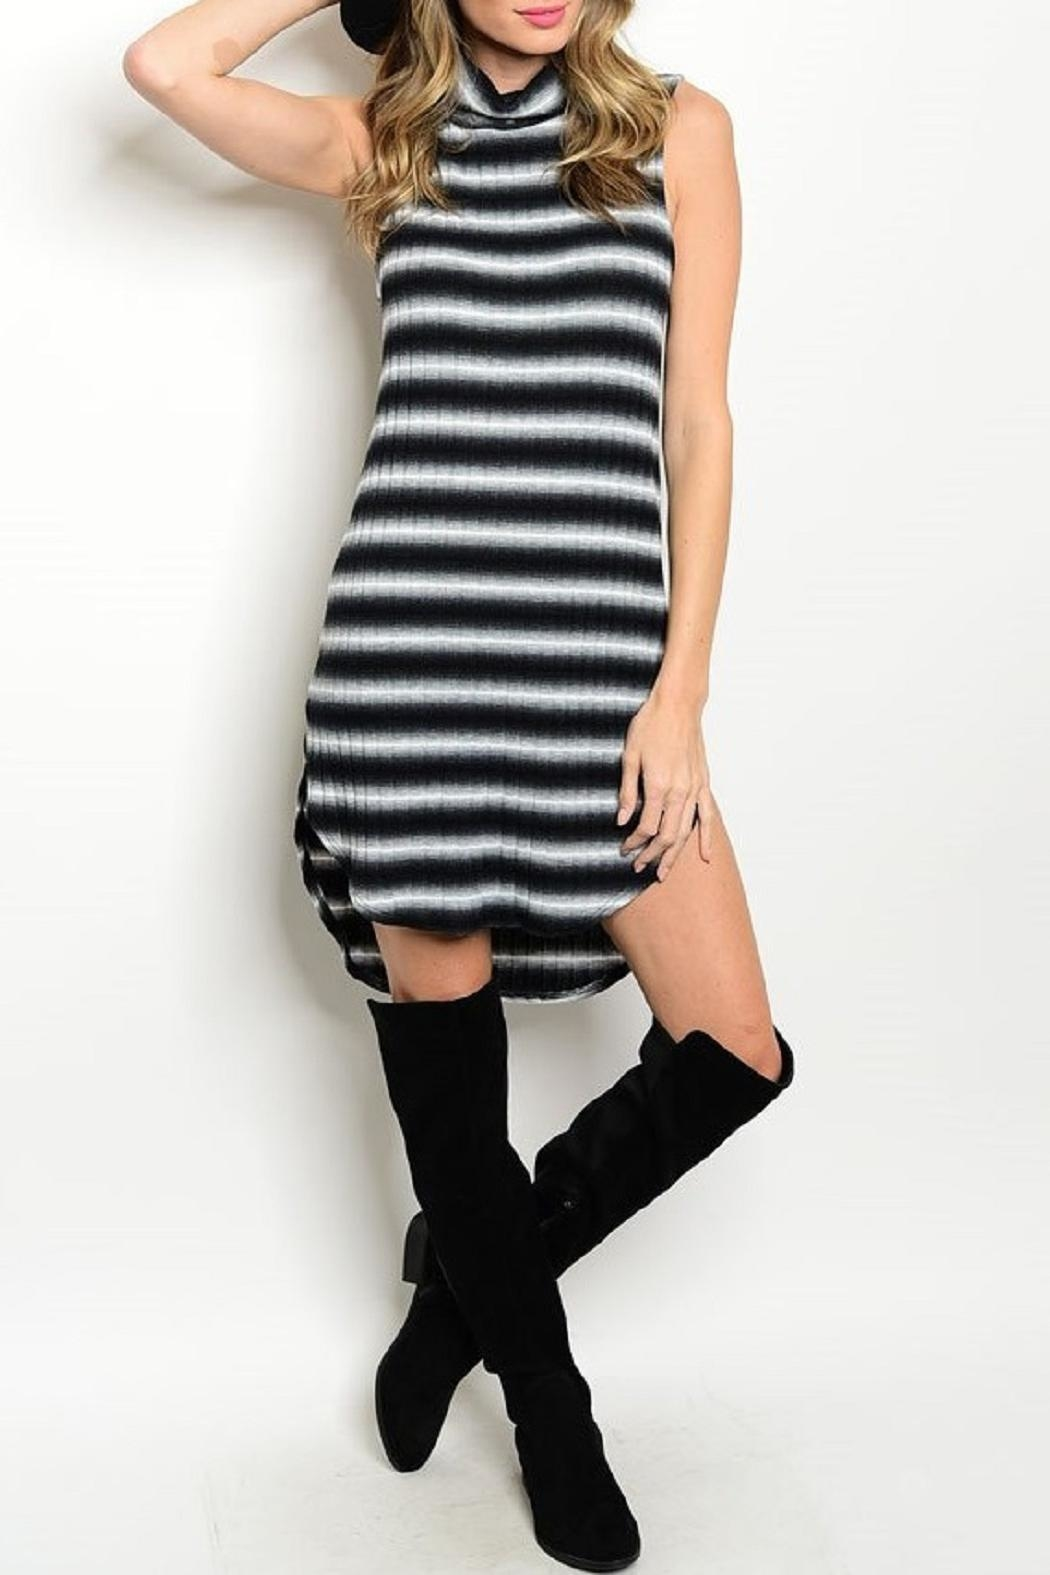 Adore Clothes & More Navy White Striped Dress - Front Cropped Image